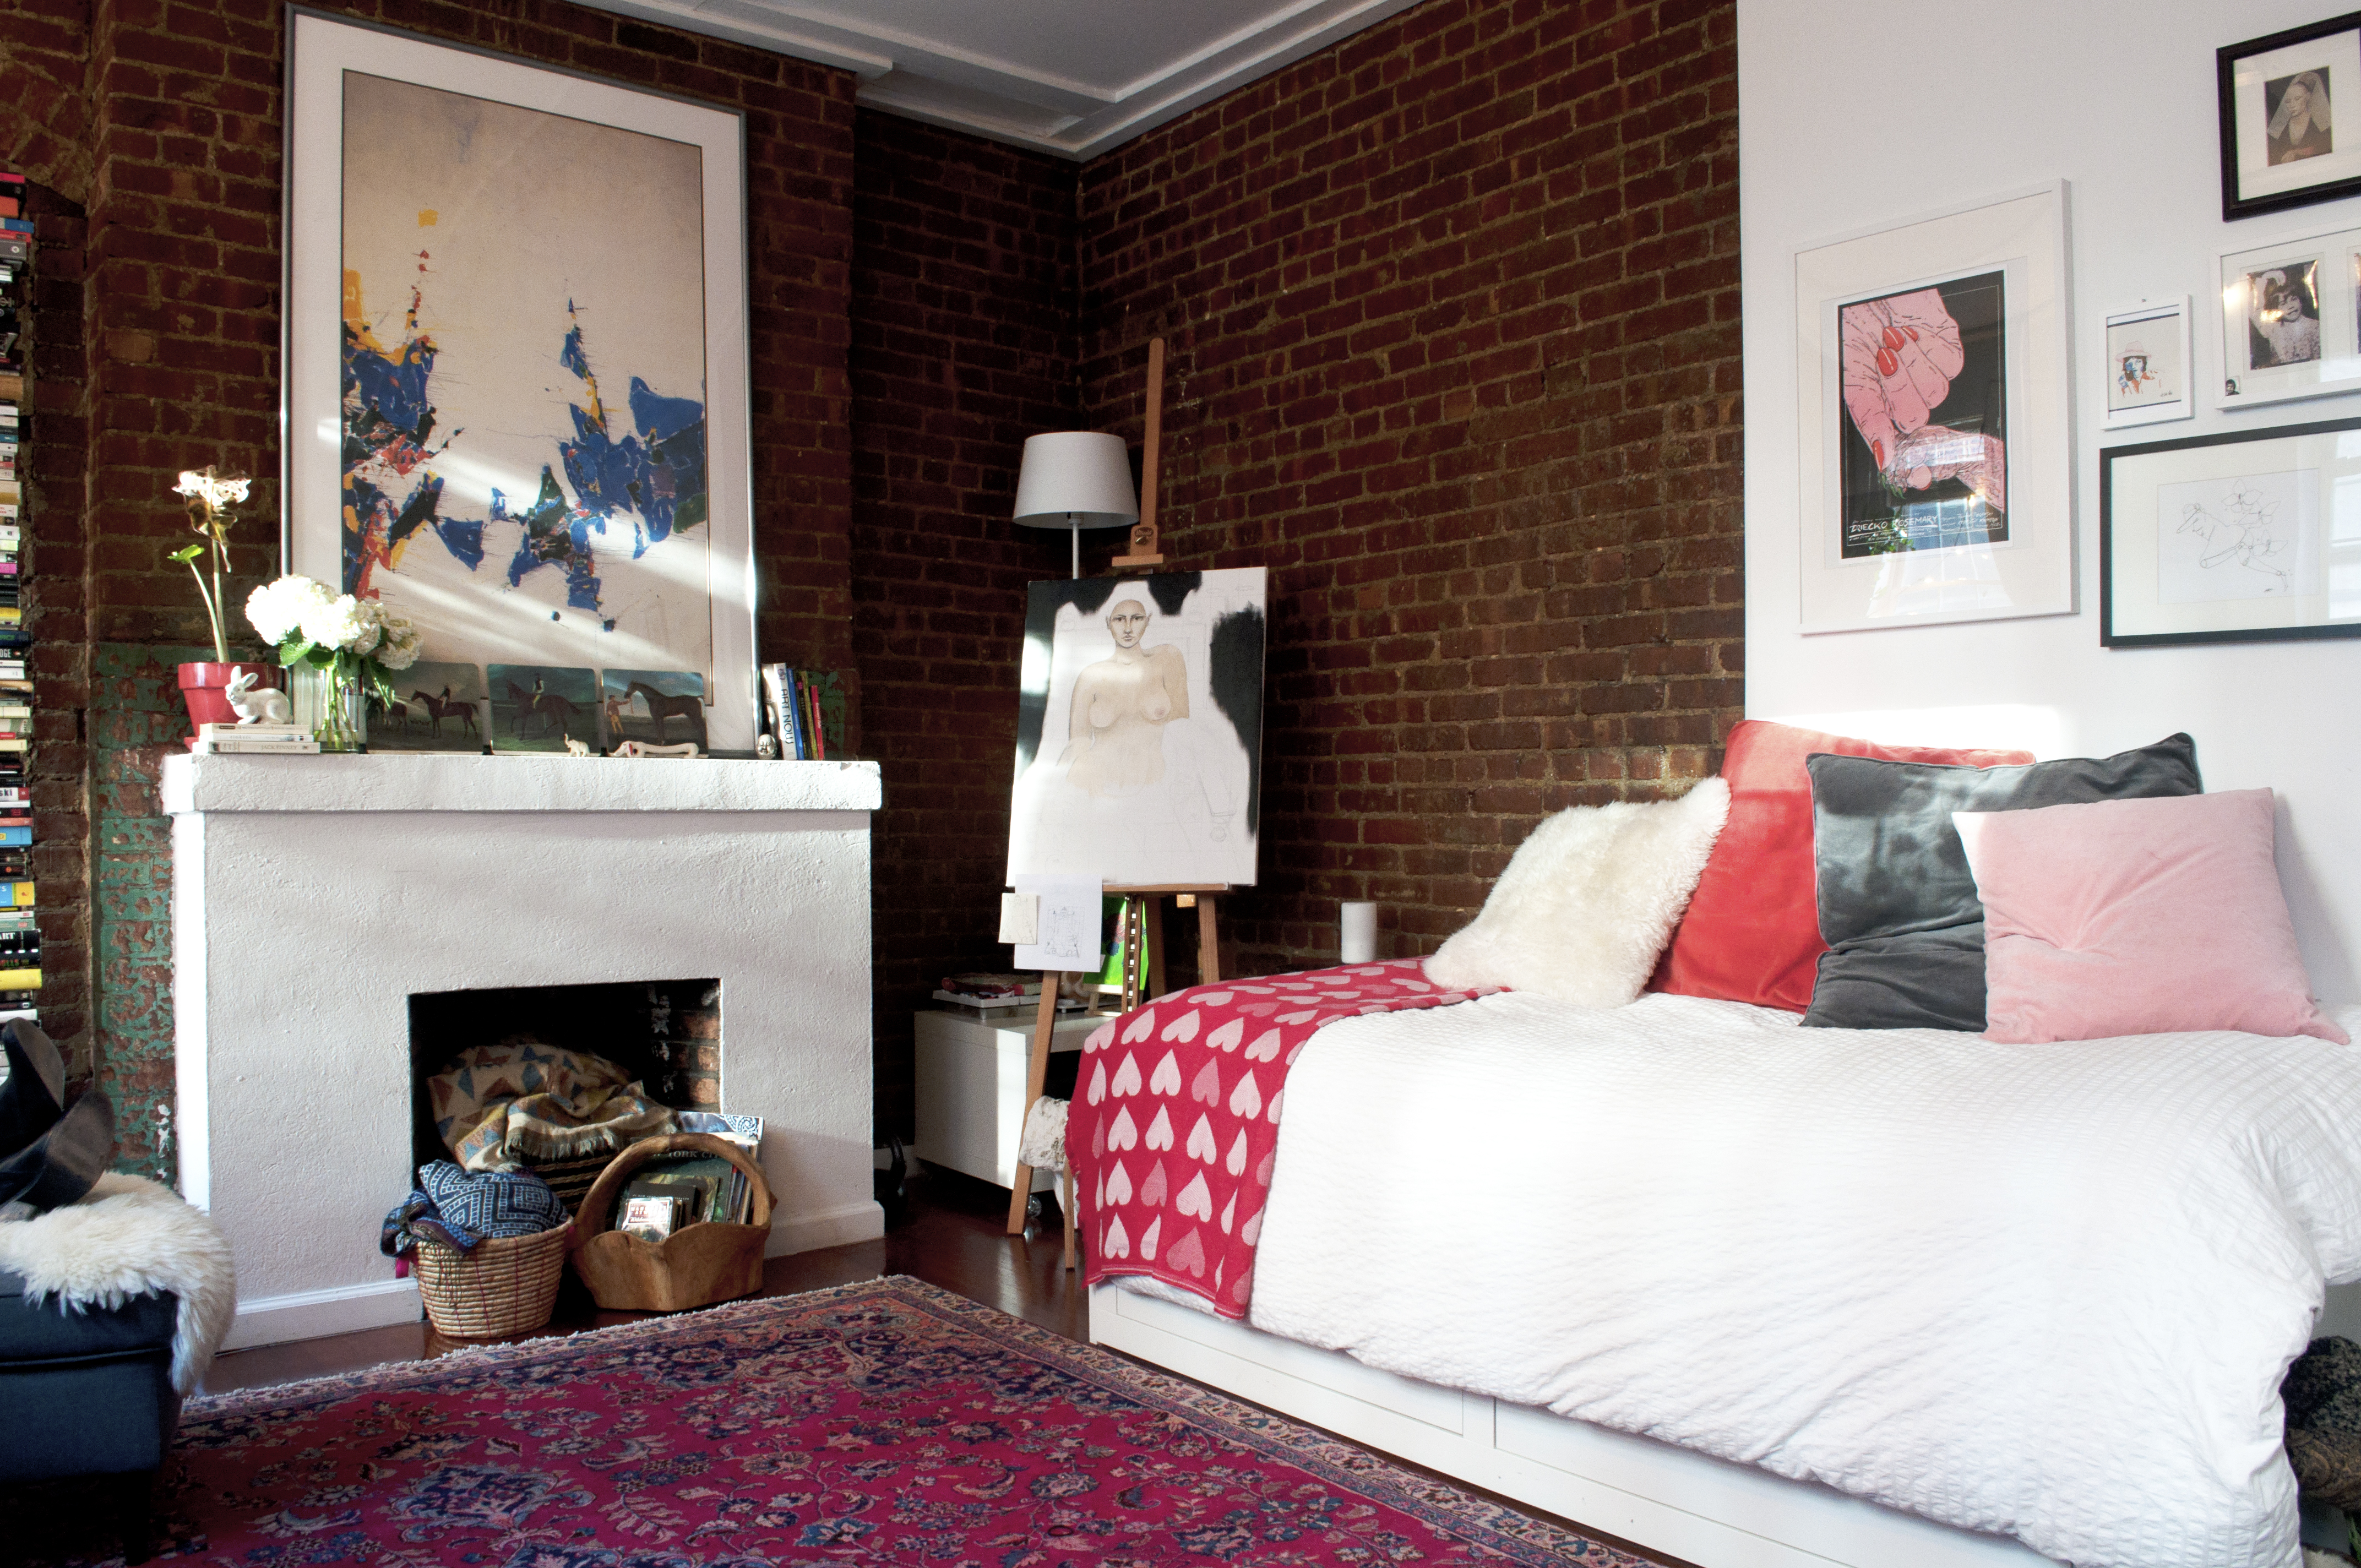 How to Arrange a Small Bedroom - Small Bedroom Layout ...